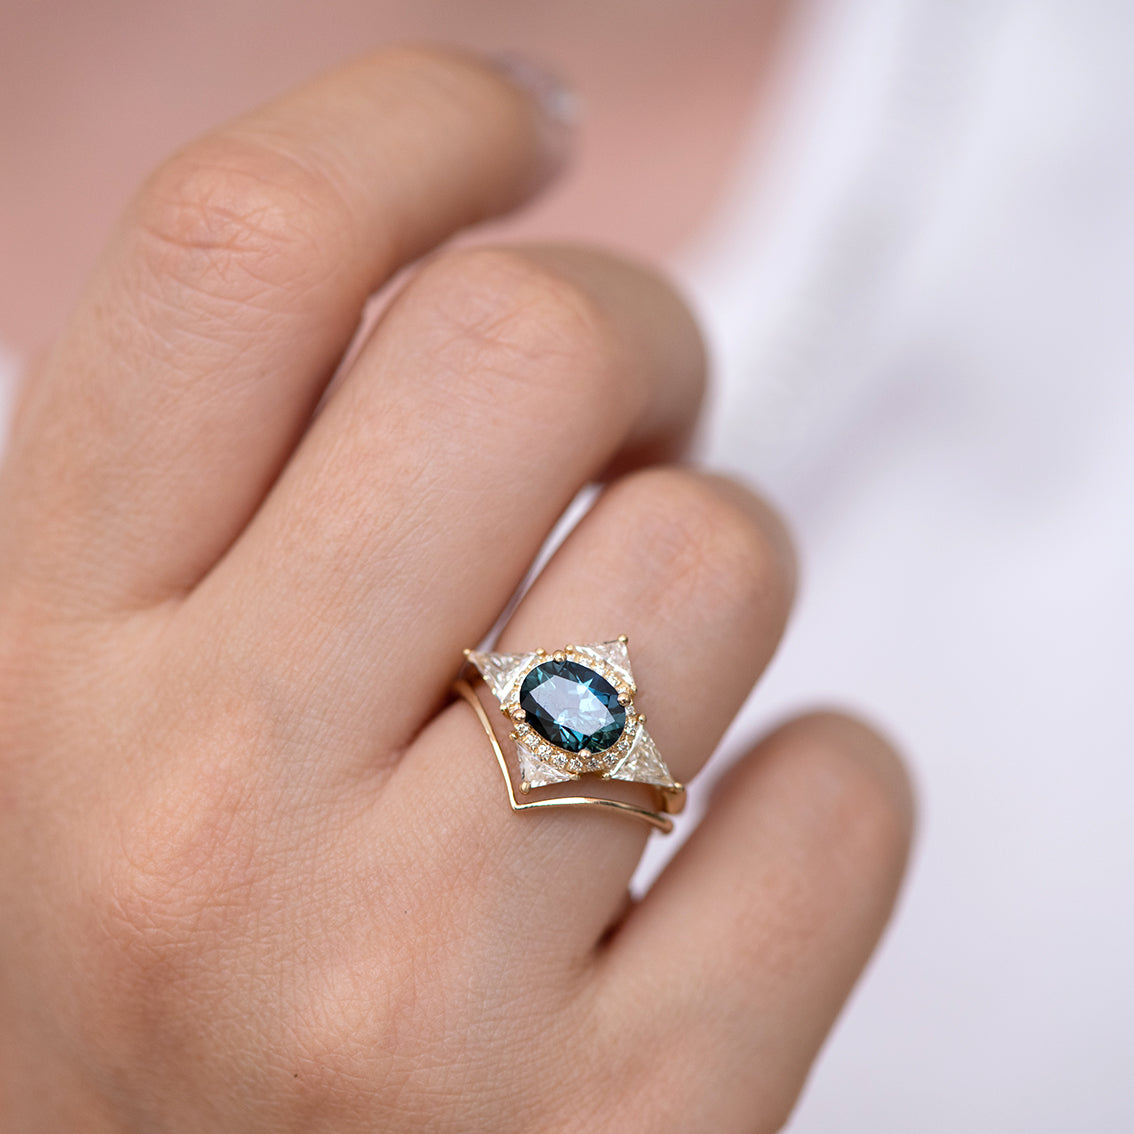 Teal Sapphire Deco Ring with Triangle Diamonds with band